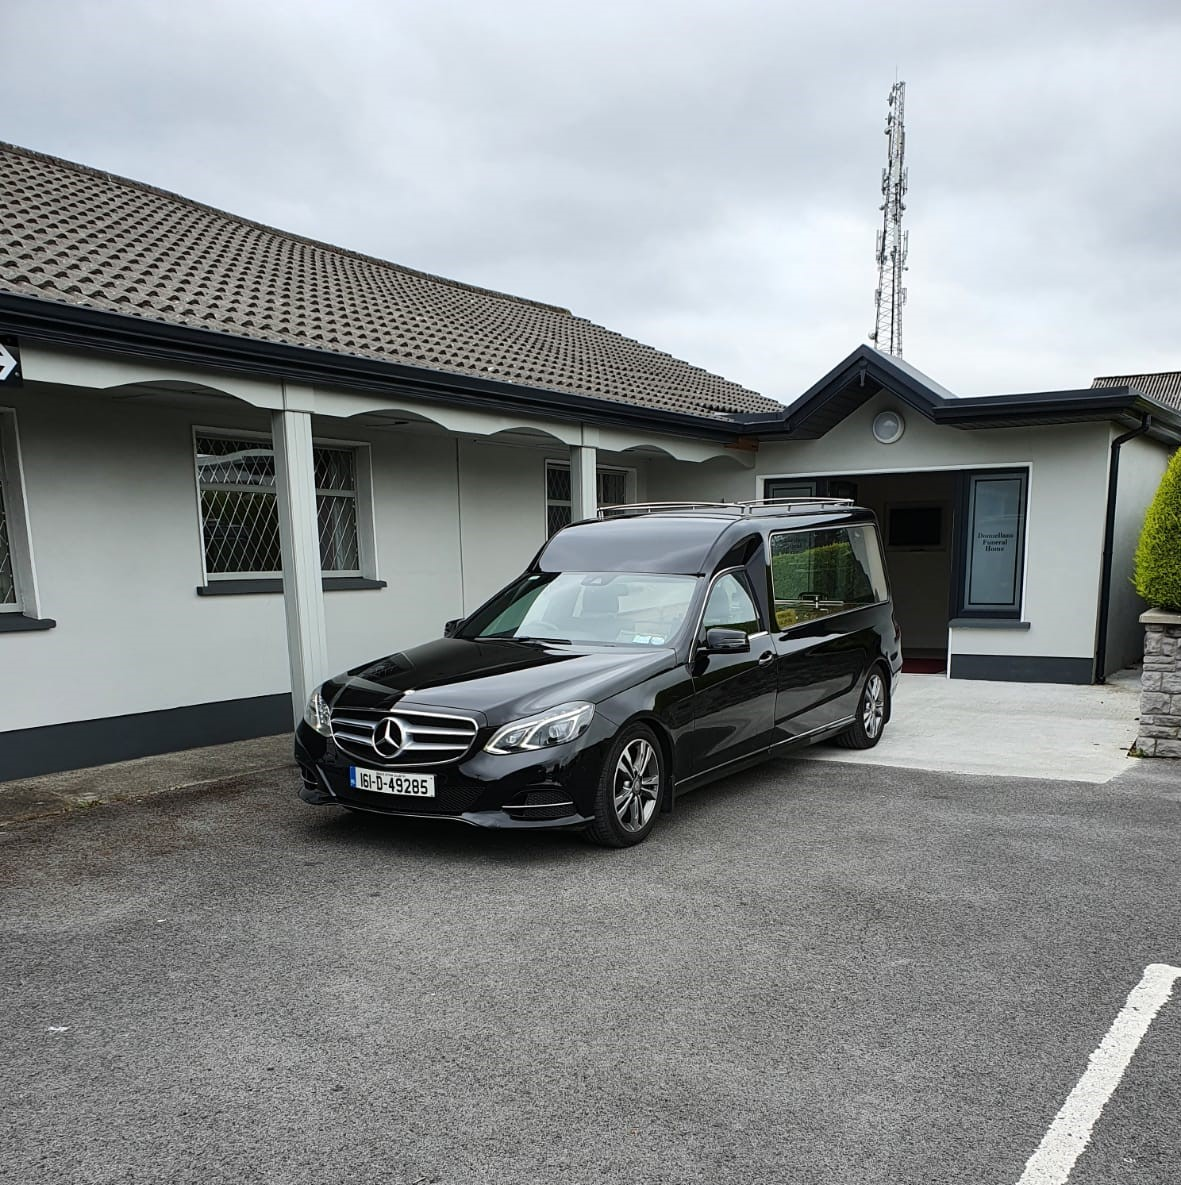 Hearse and Funeral Home